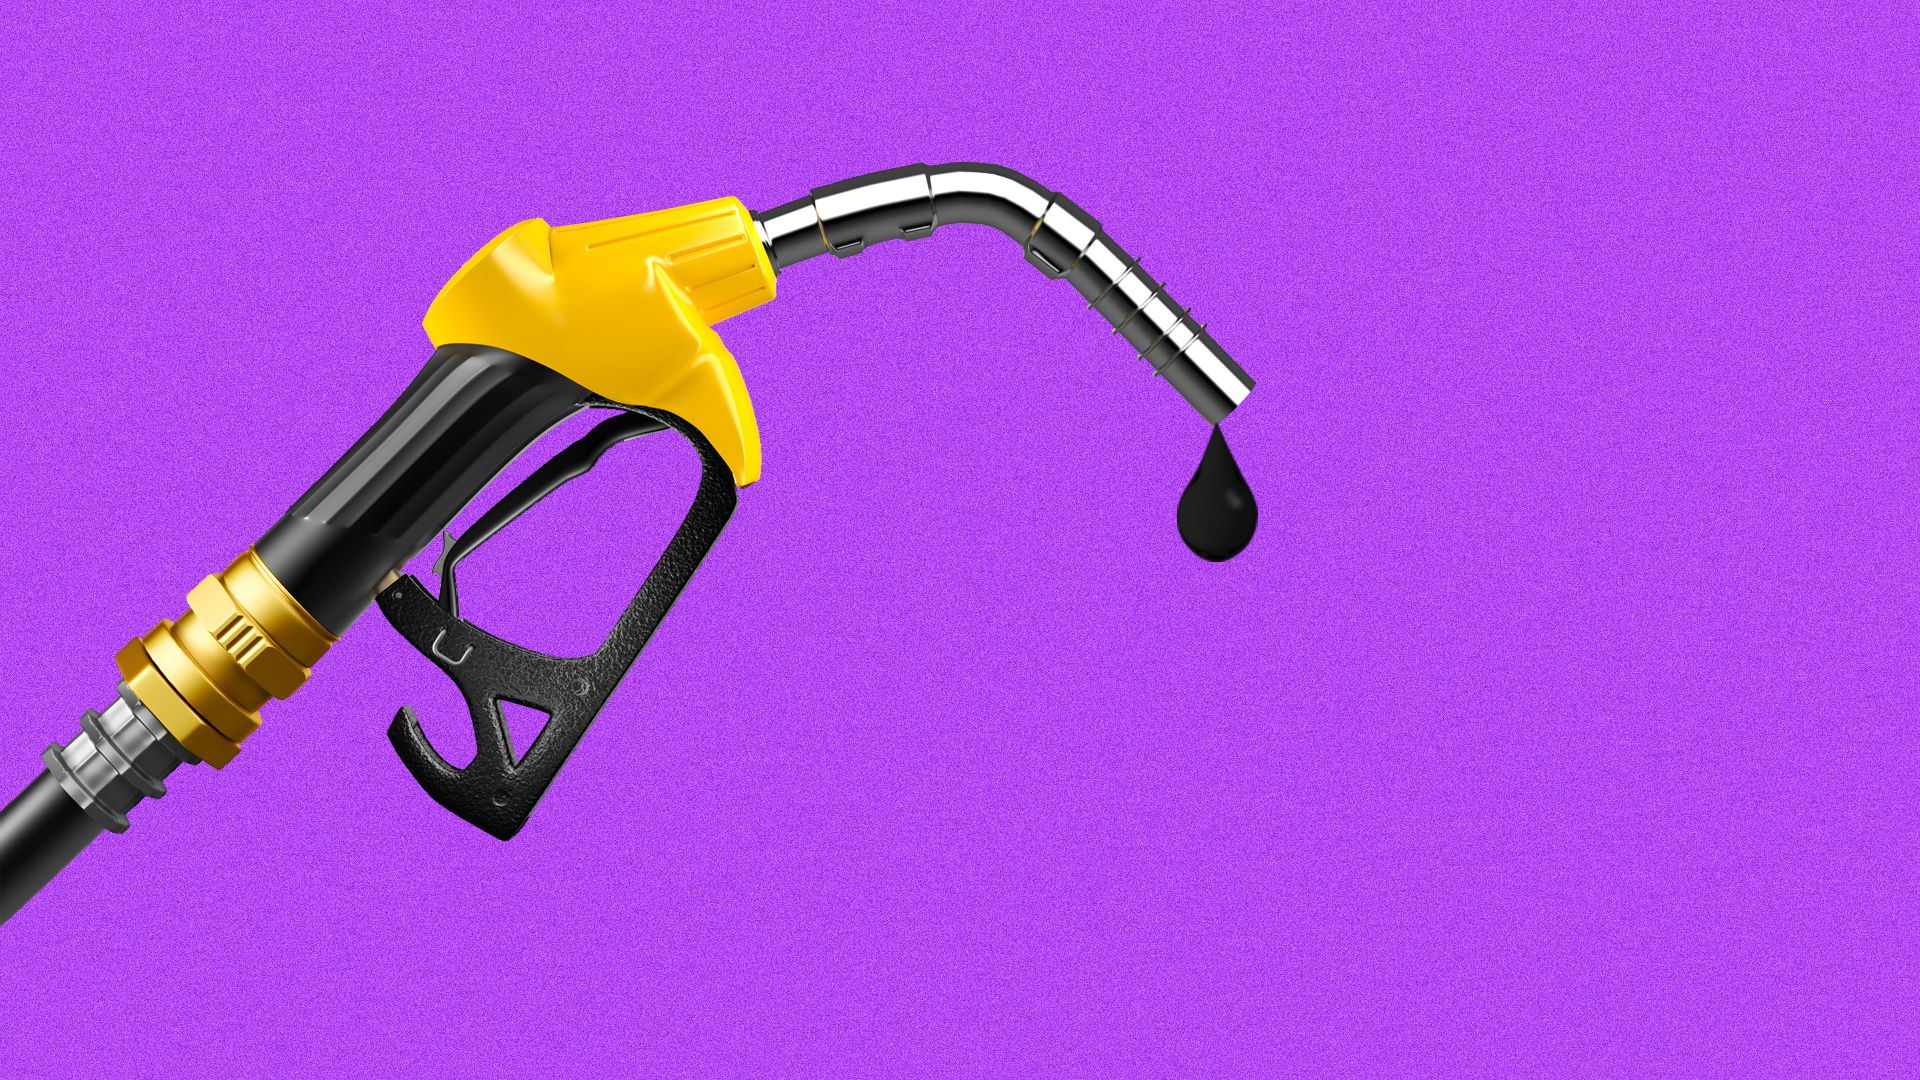 Gas nozzle dripping